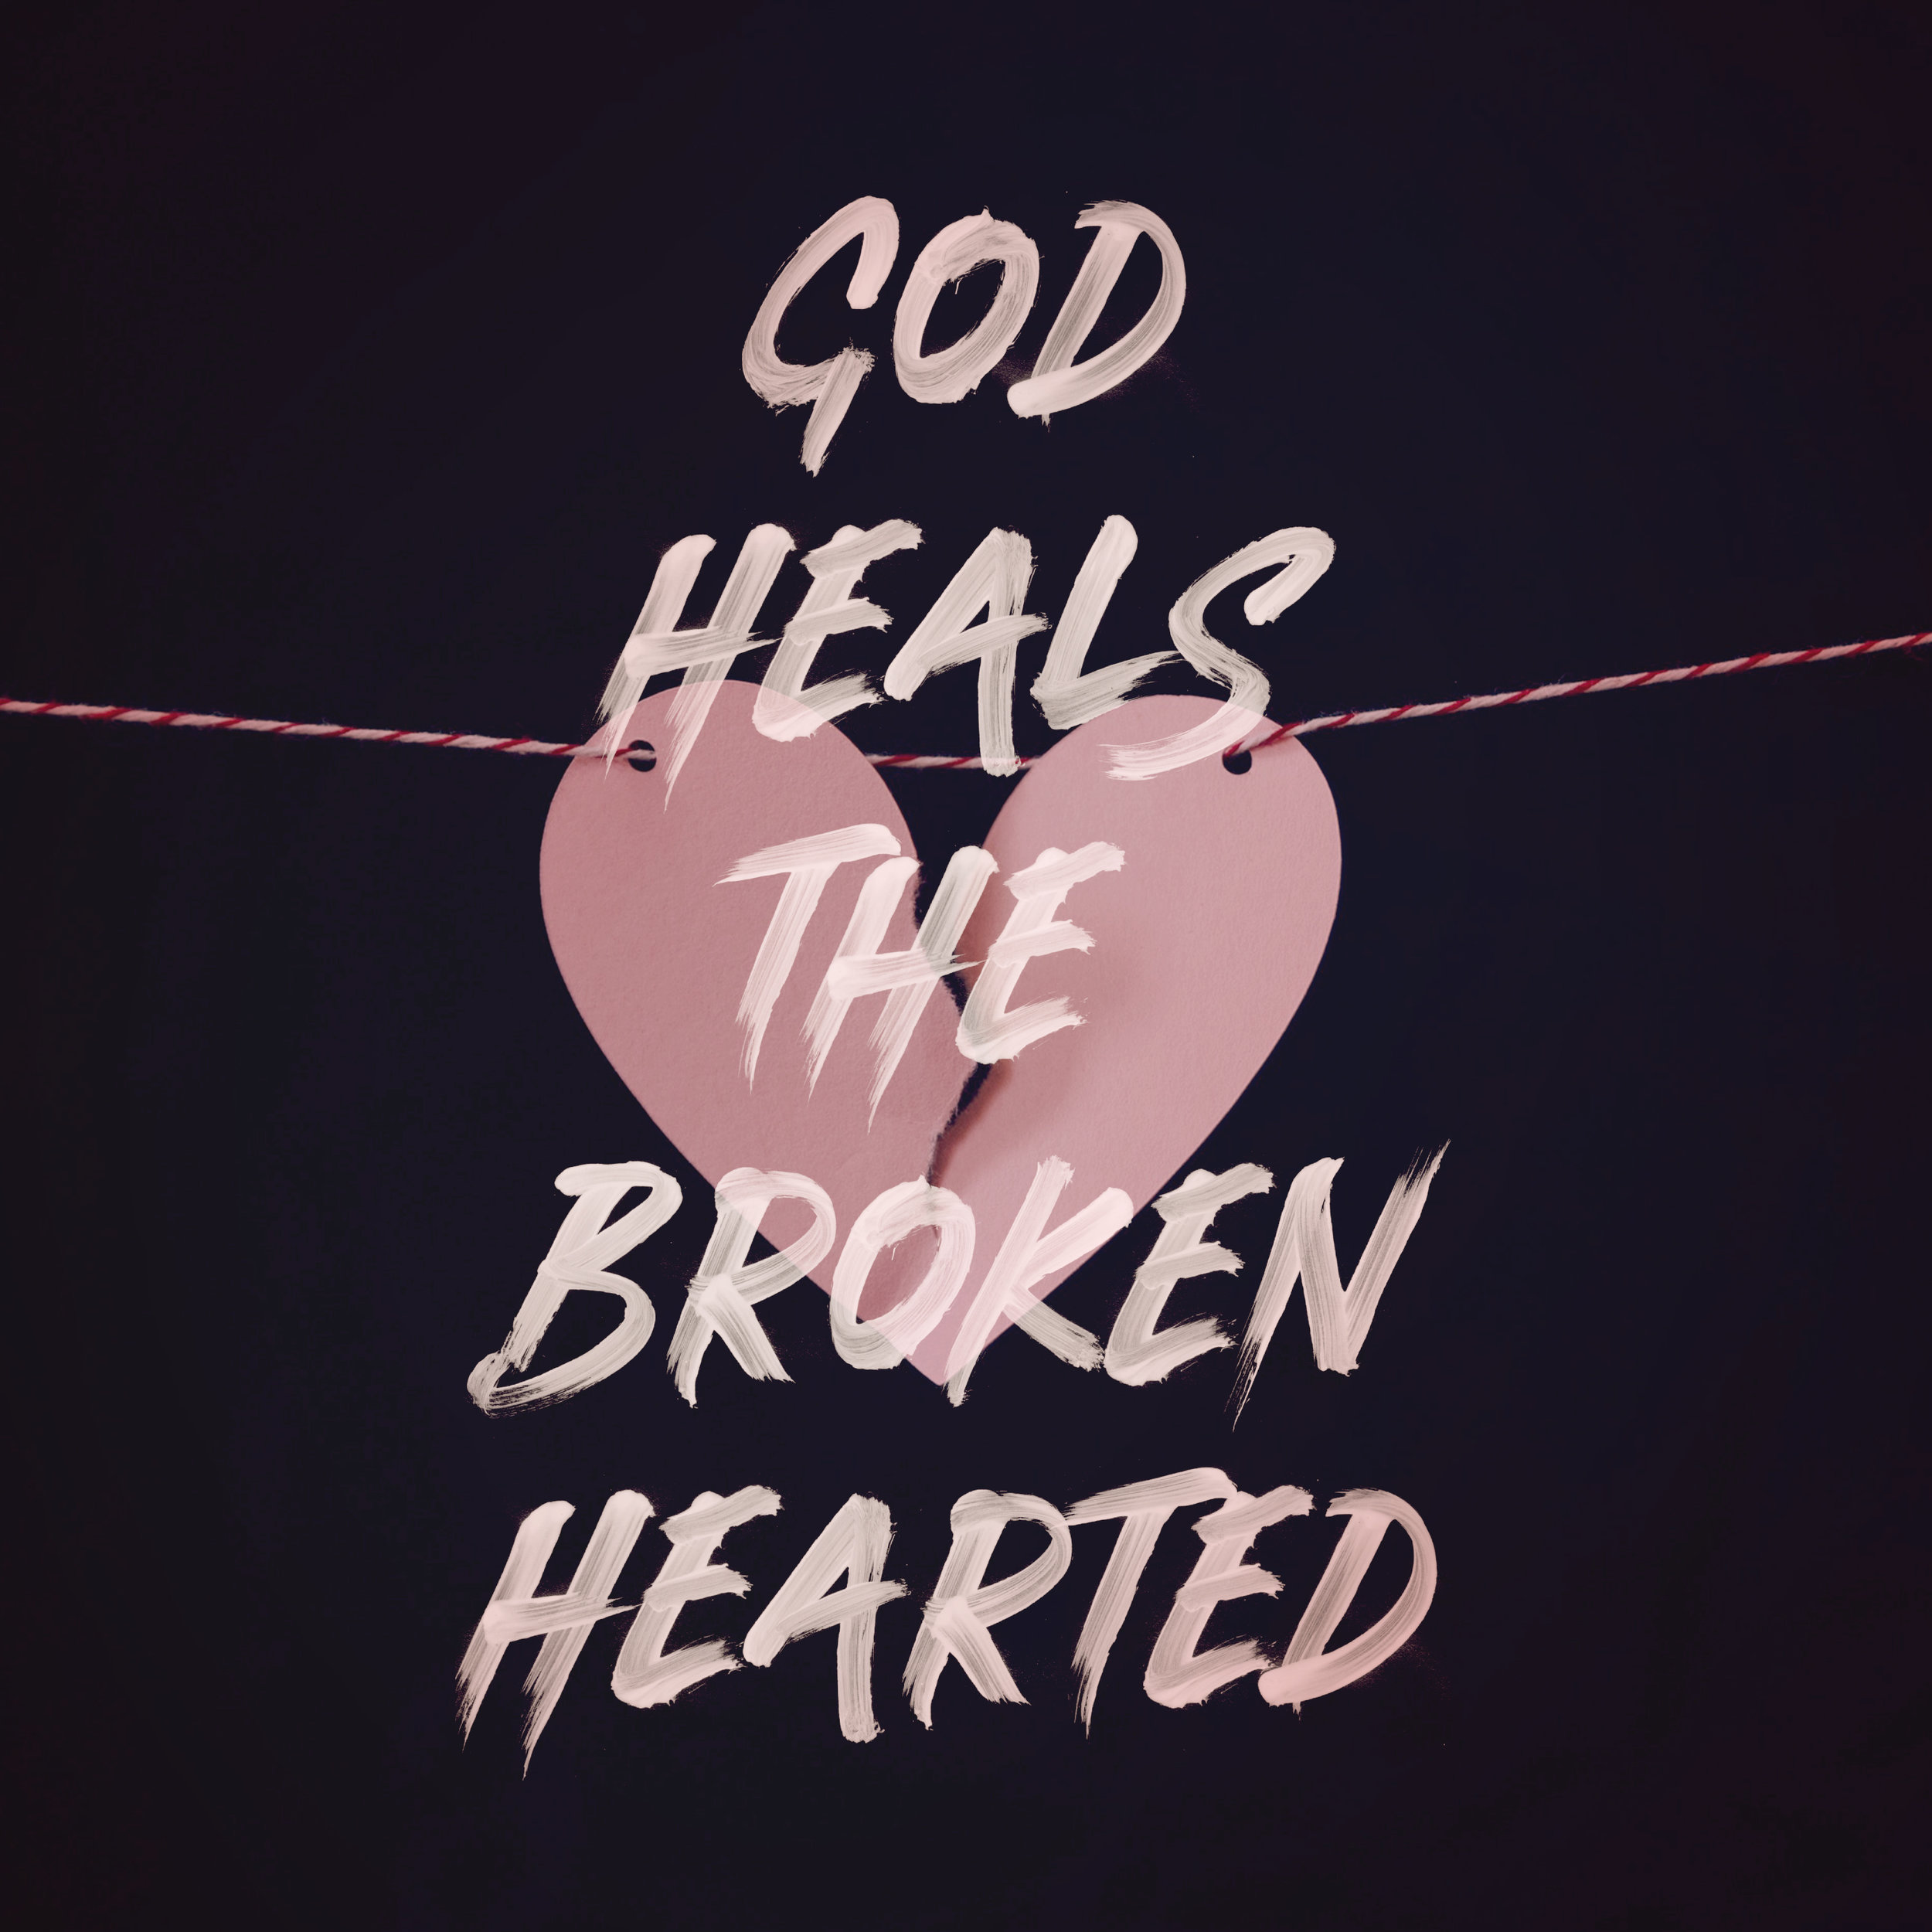 god-heals-the-broken-hearted.jpg